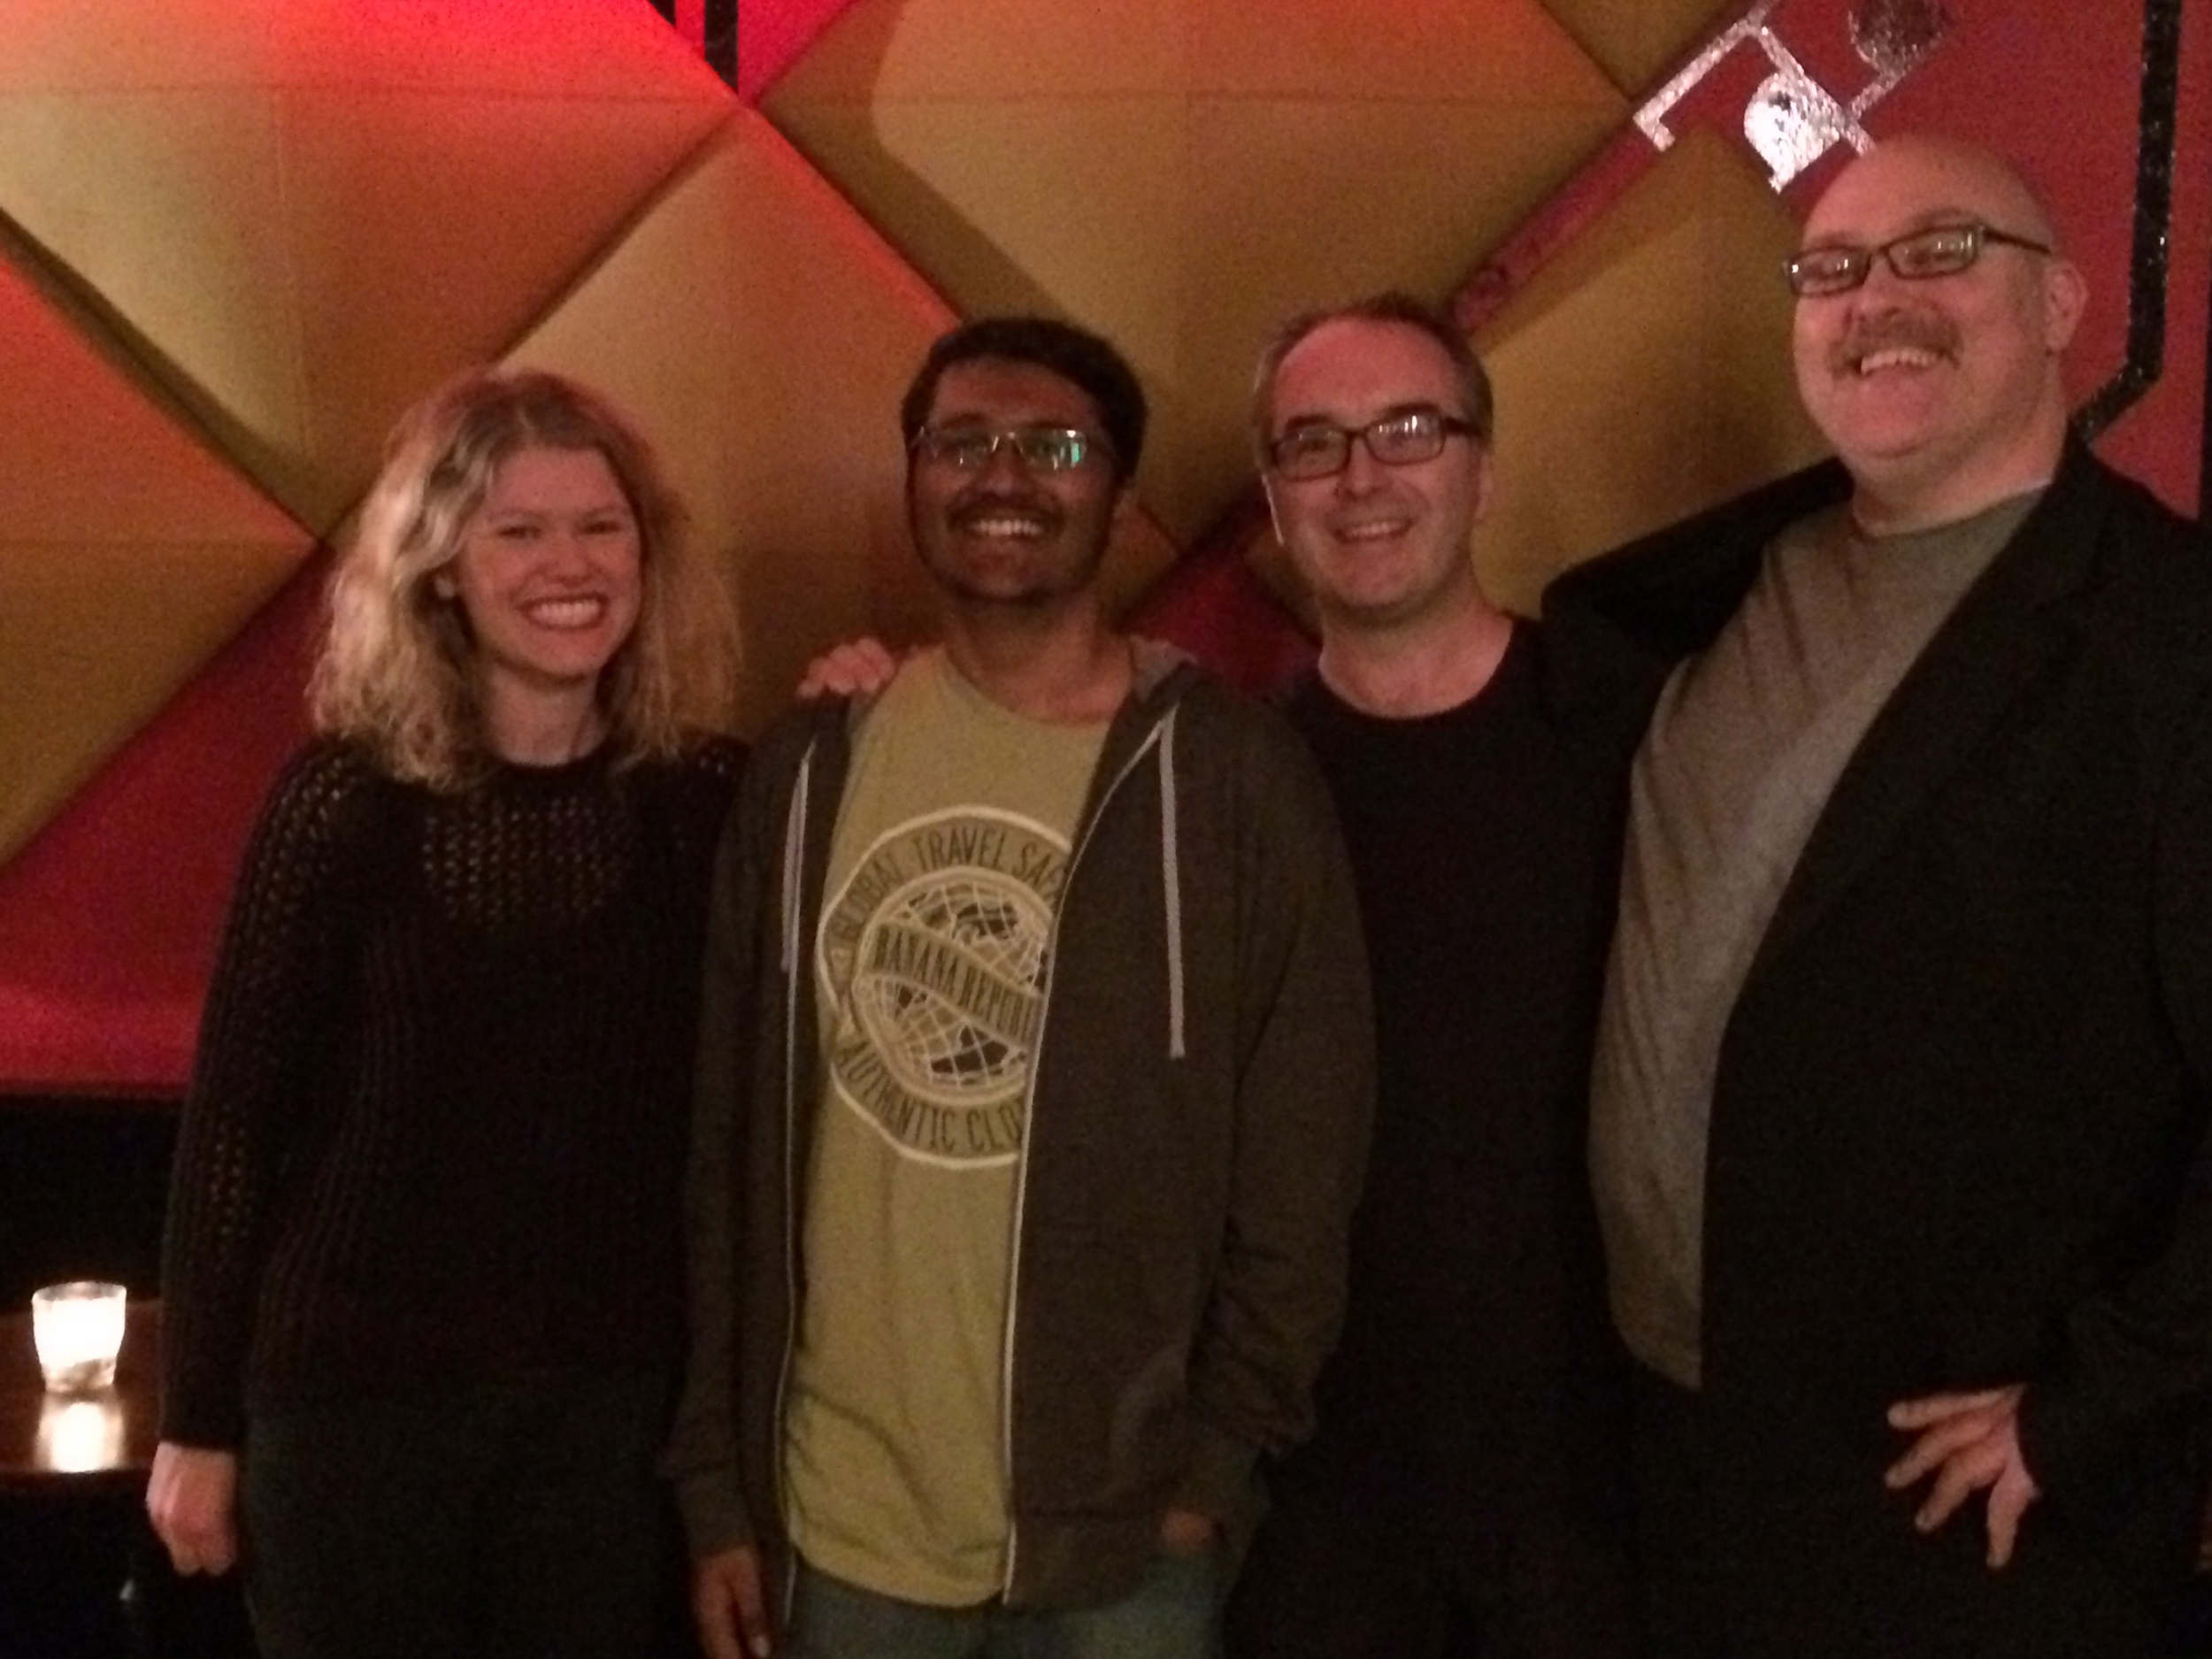 Kate McLennan, Rohan Desai, this idiot and Adam Richard before the show began.